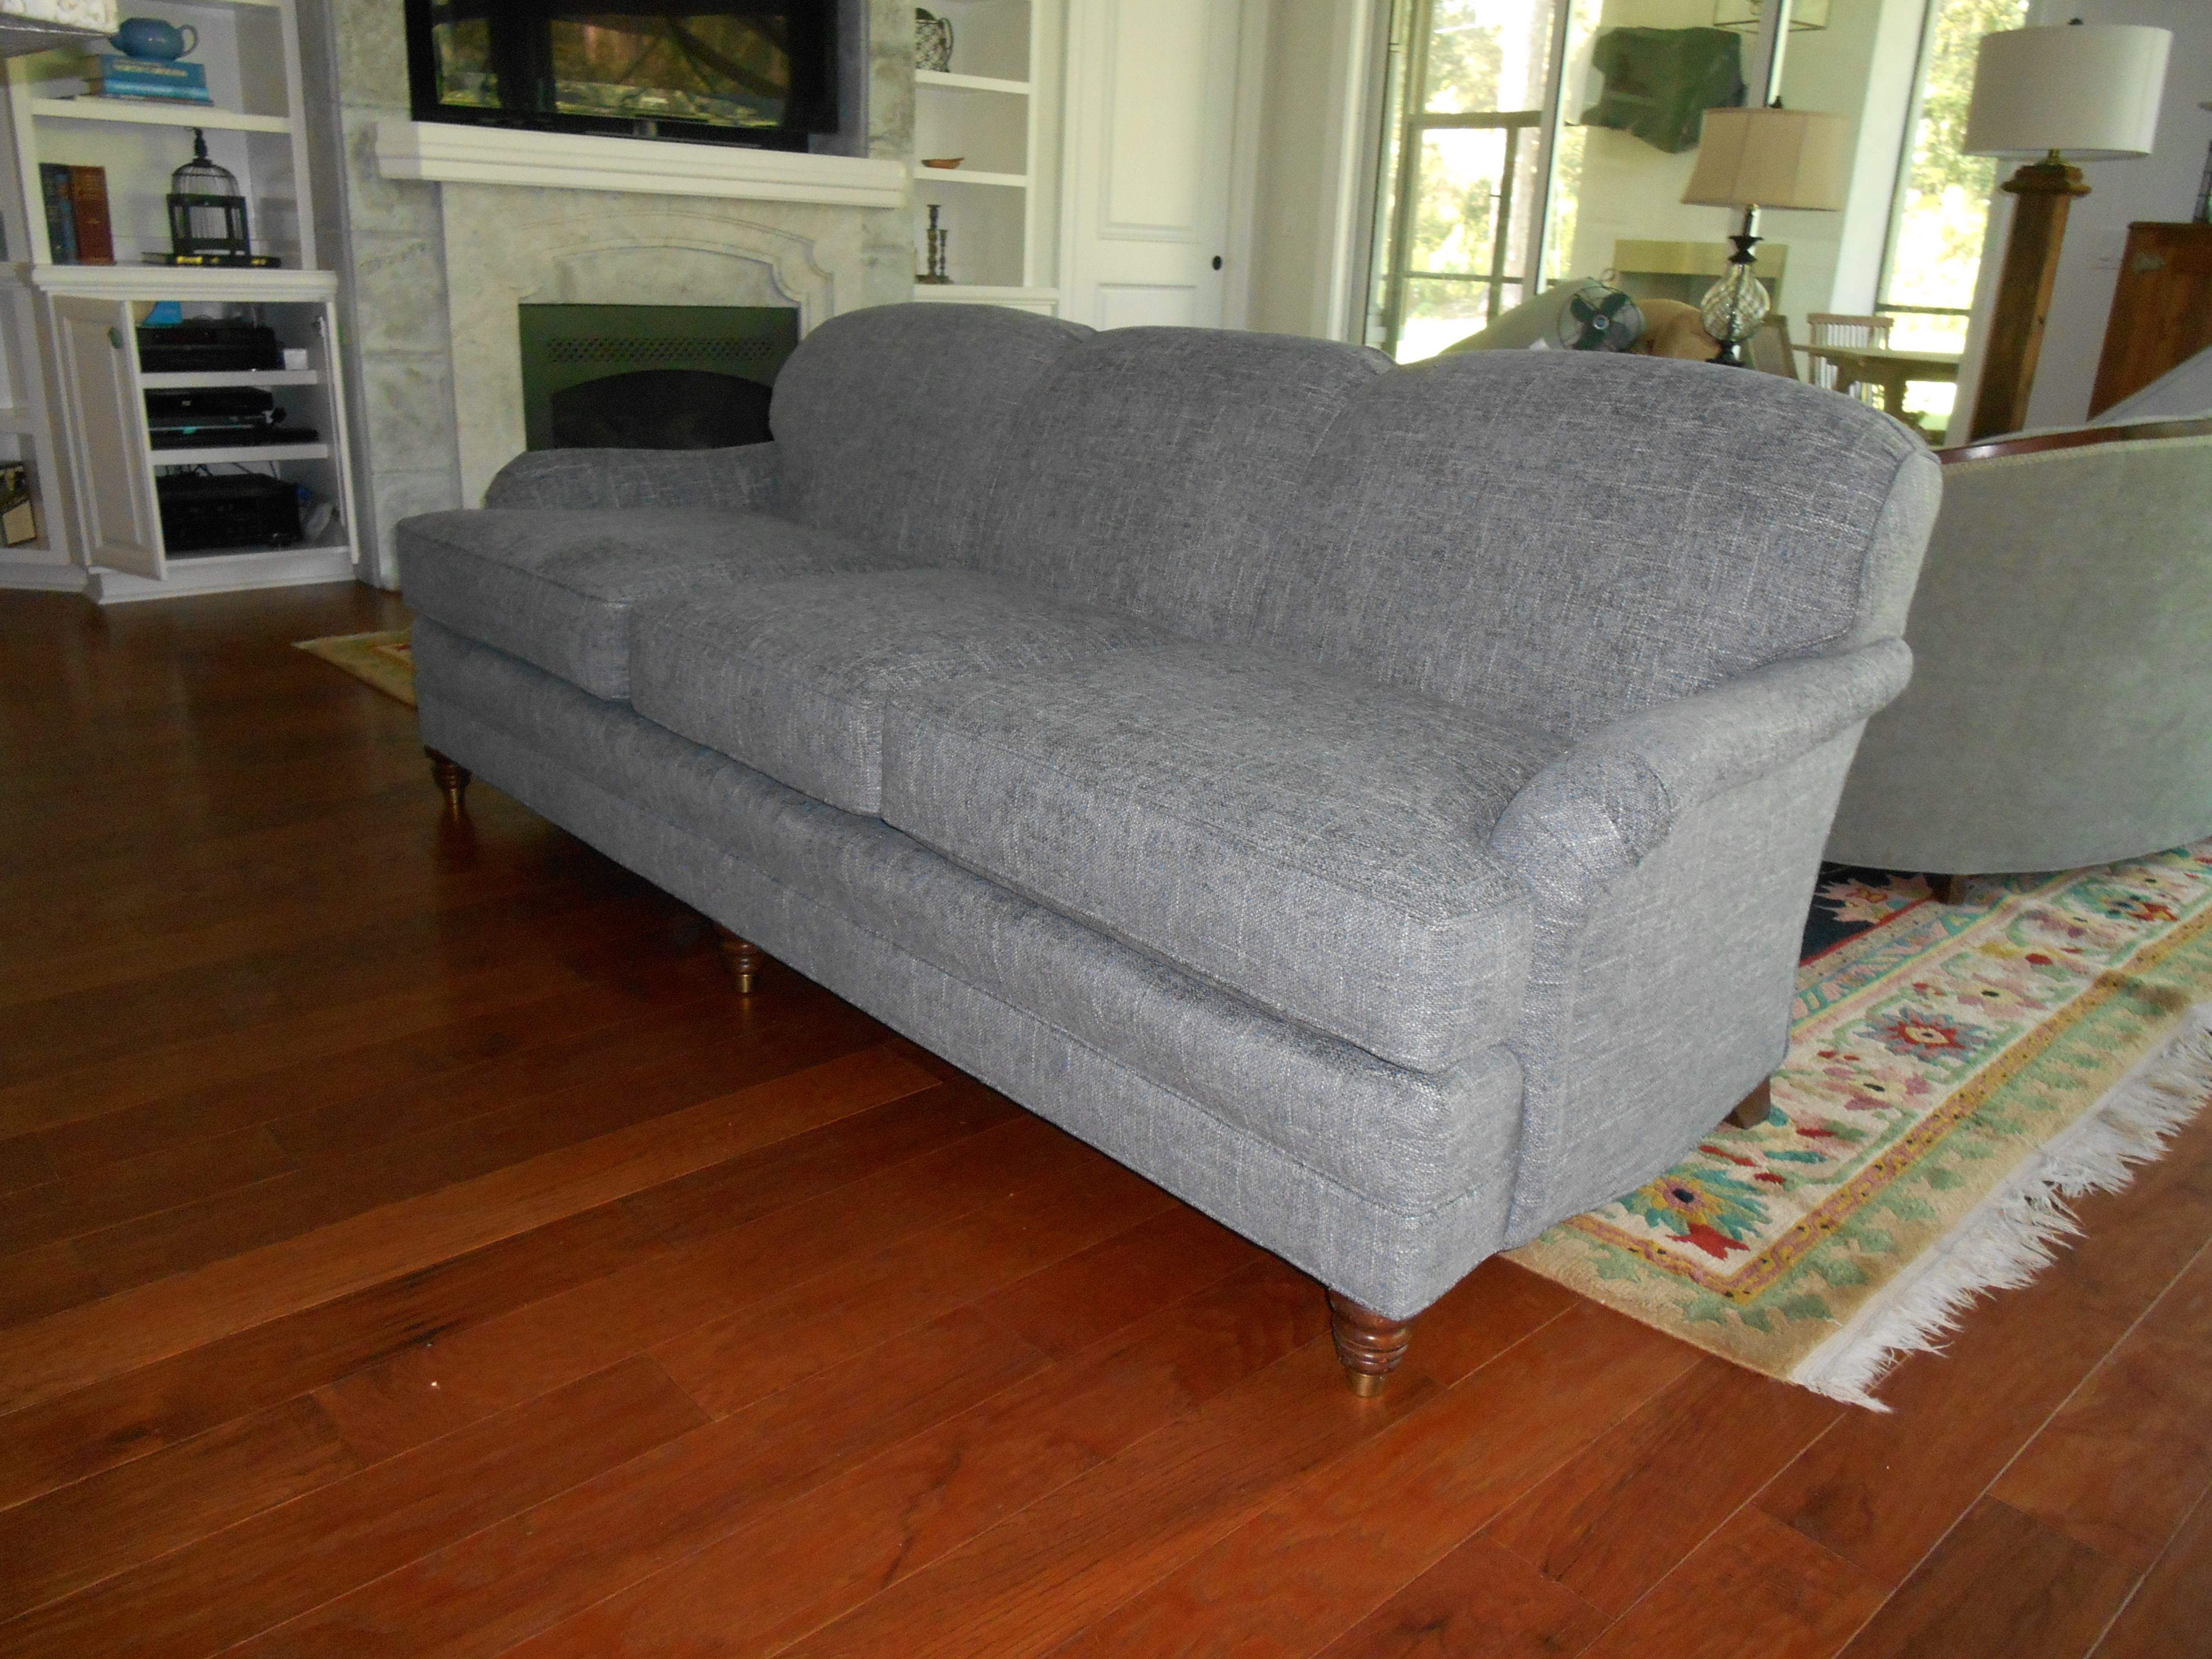 2 Ladd Upholstery Designs Gainesville And Ladd